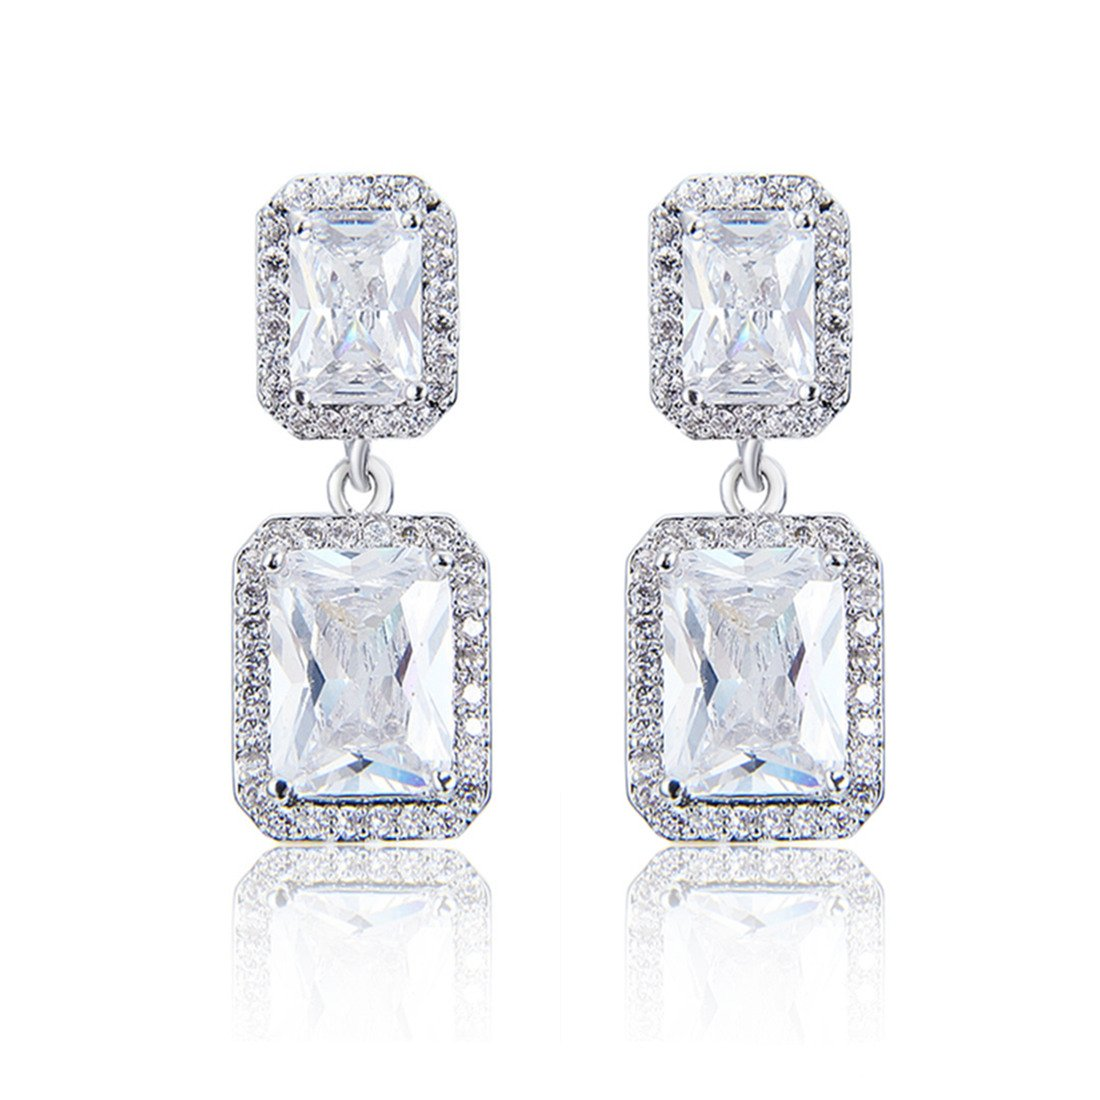 Wordless Love Jewelry Sets for Women Cubic Zirconia Party Earrings Pendant Necklace Set by Wordless Love (Image #2)